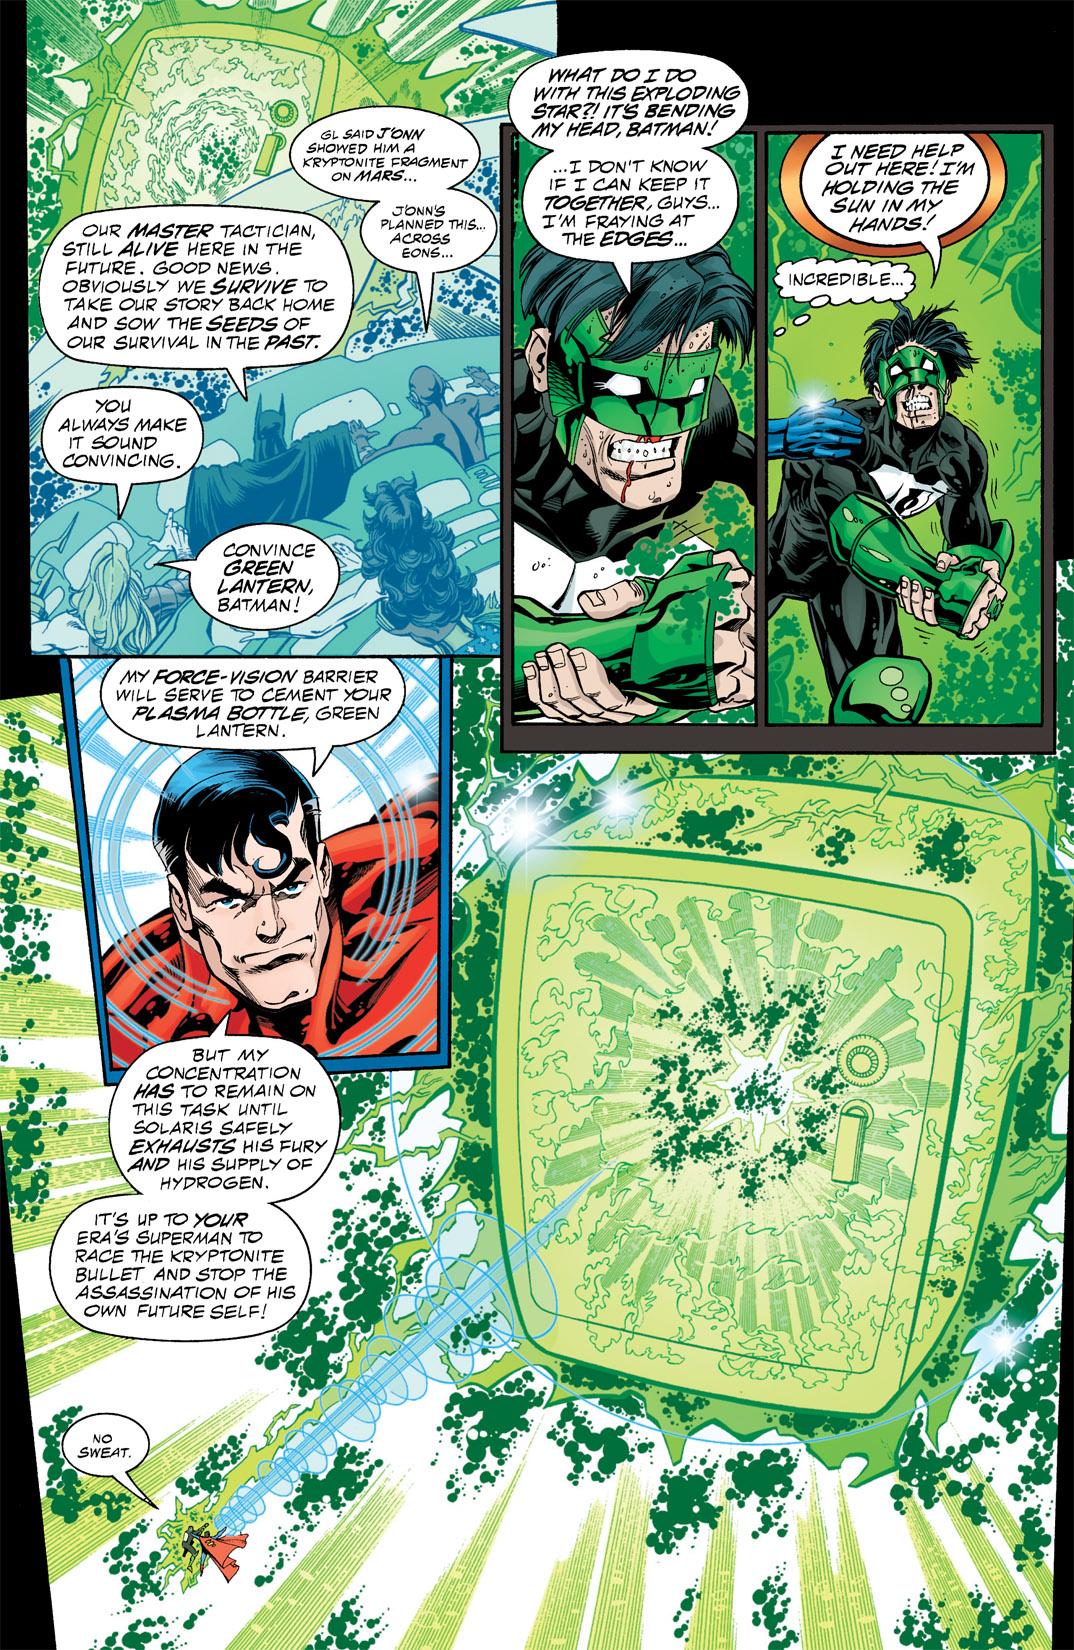 SUPER FEAT: In 'DC One Million' #4, Green Lantern Kyle Rayner holds Solaris in a plasma bottle helped by Superman One Million's Force Vision.